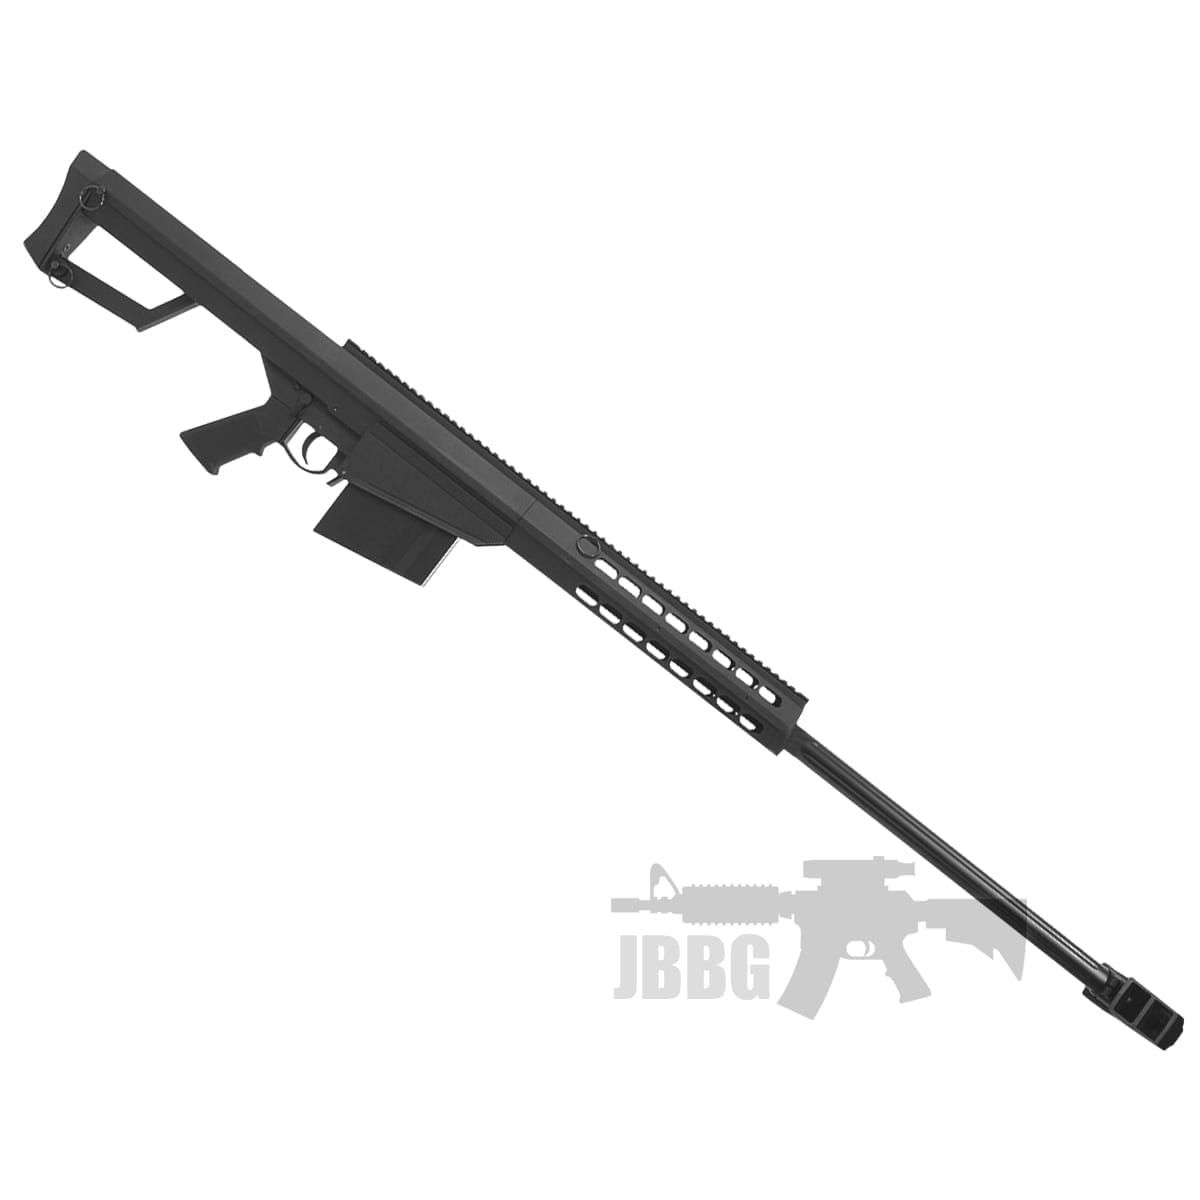 G31 Large Sniper Rifle